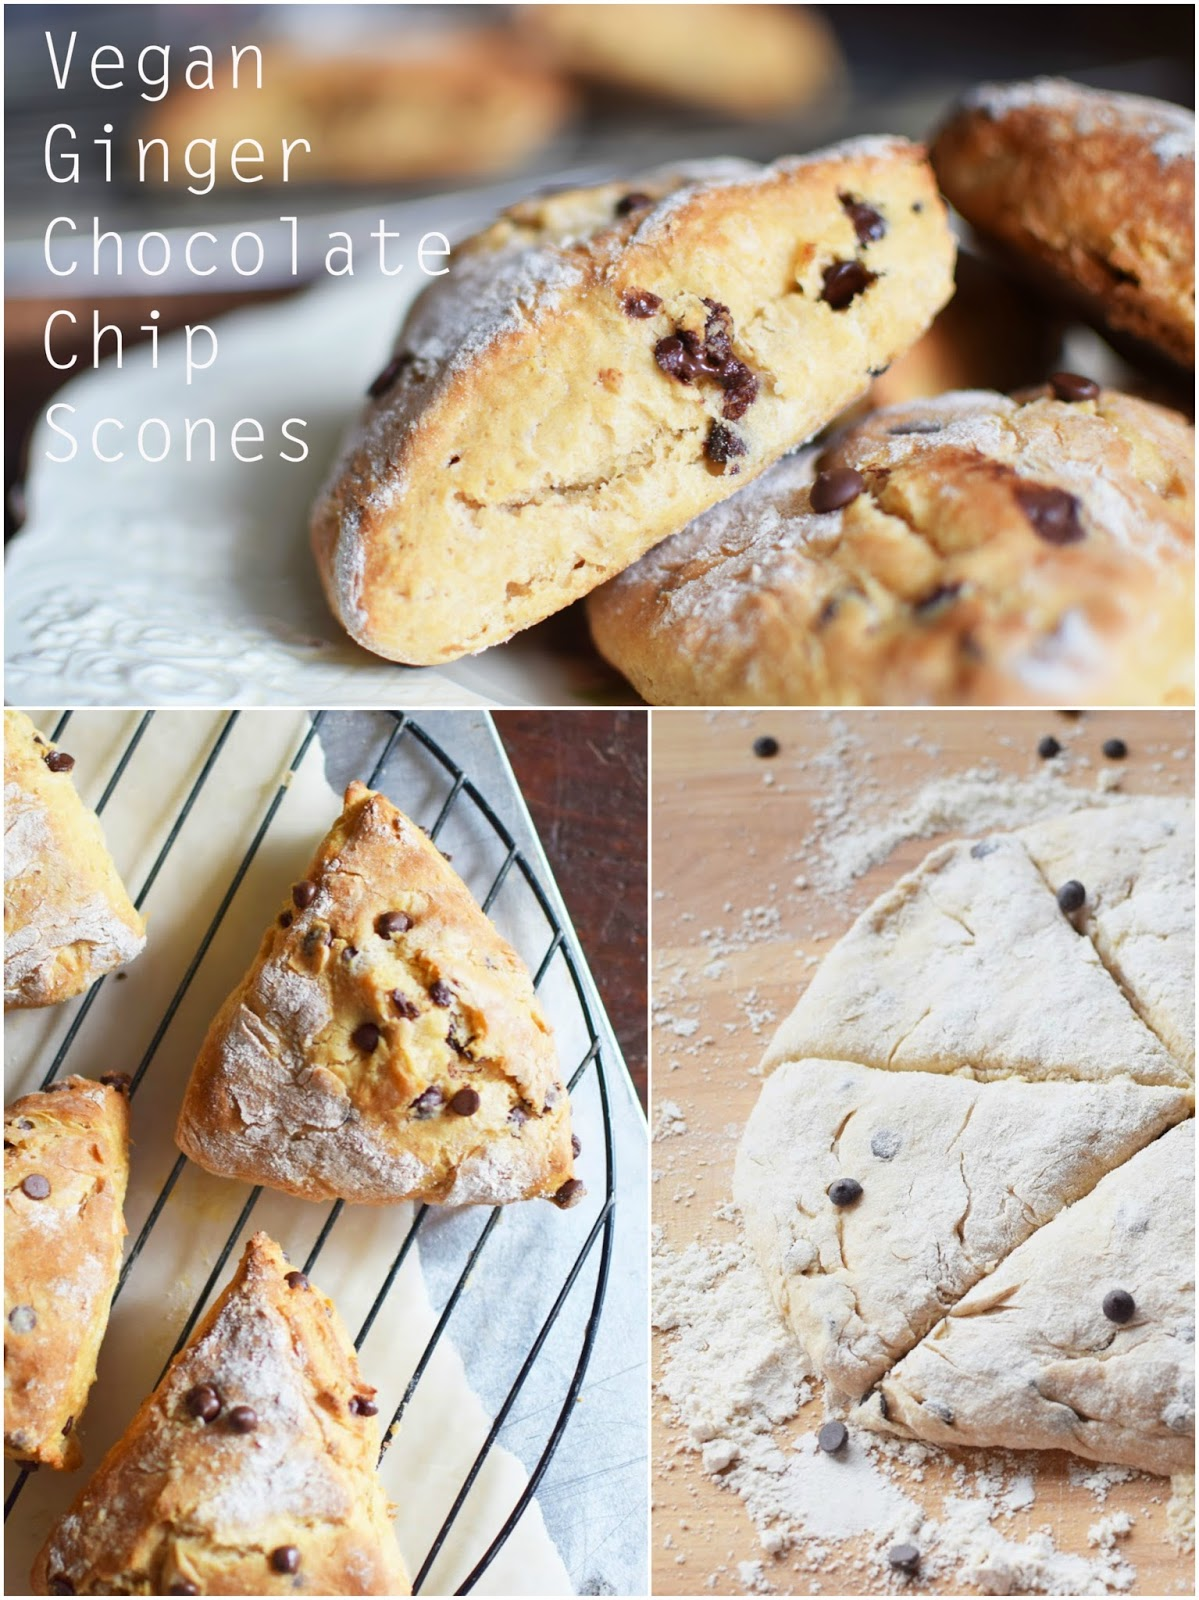 These Vegan Ginger Chocolate Chip Scones are completely free of dairy, but with all the warm delicious goodness a scone should have!